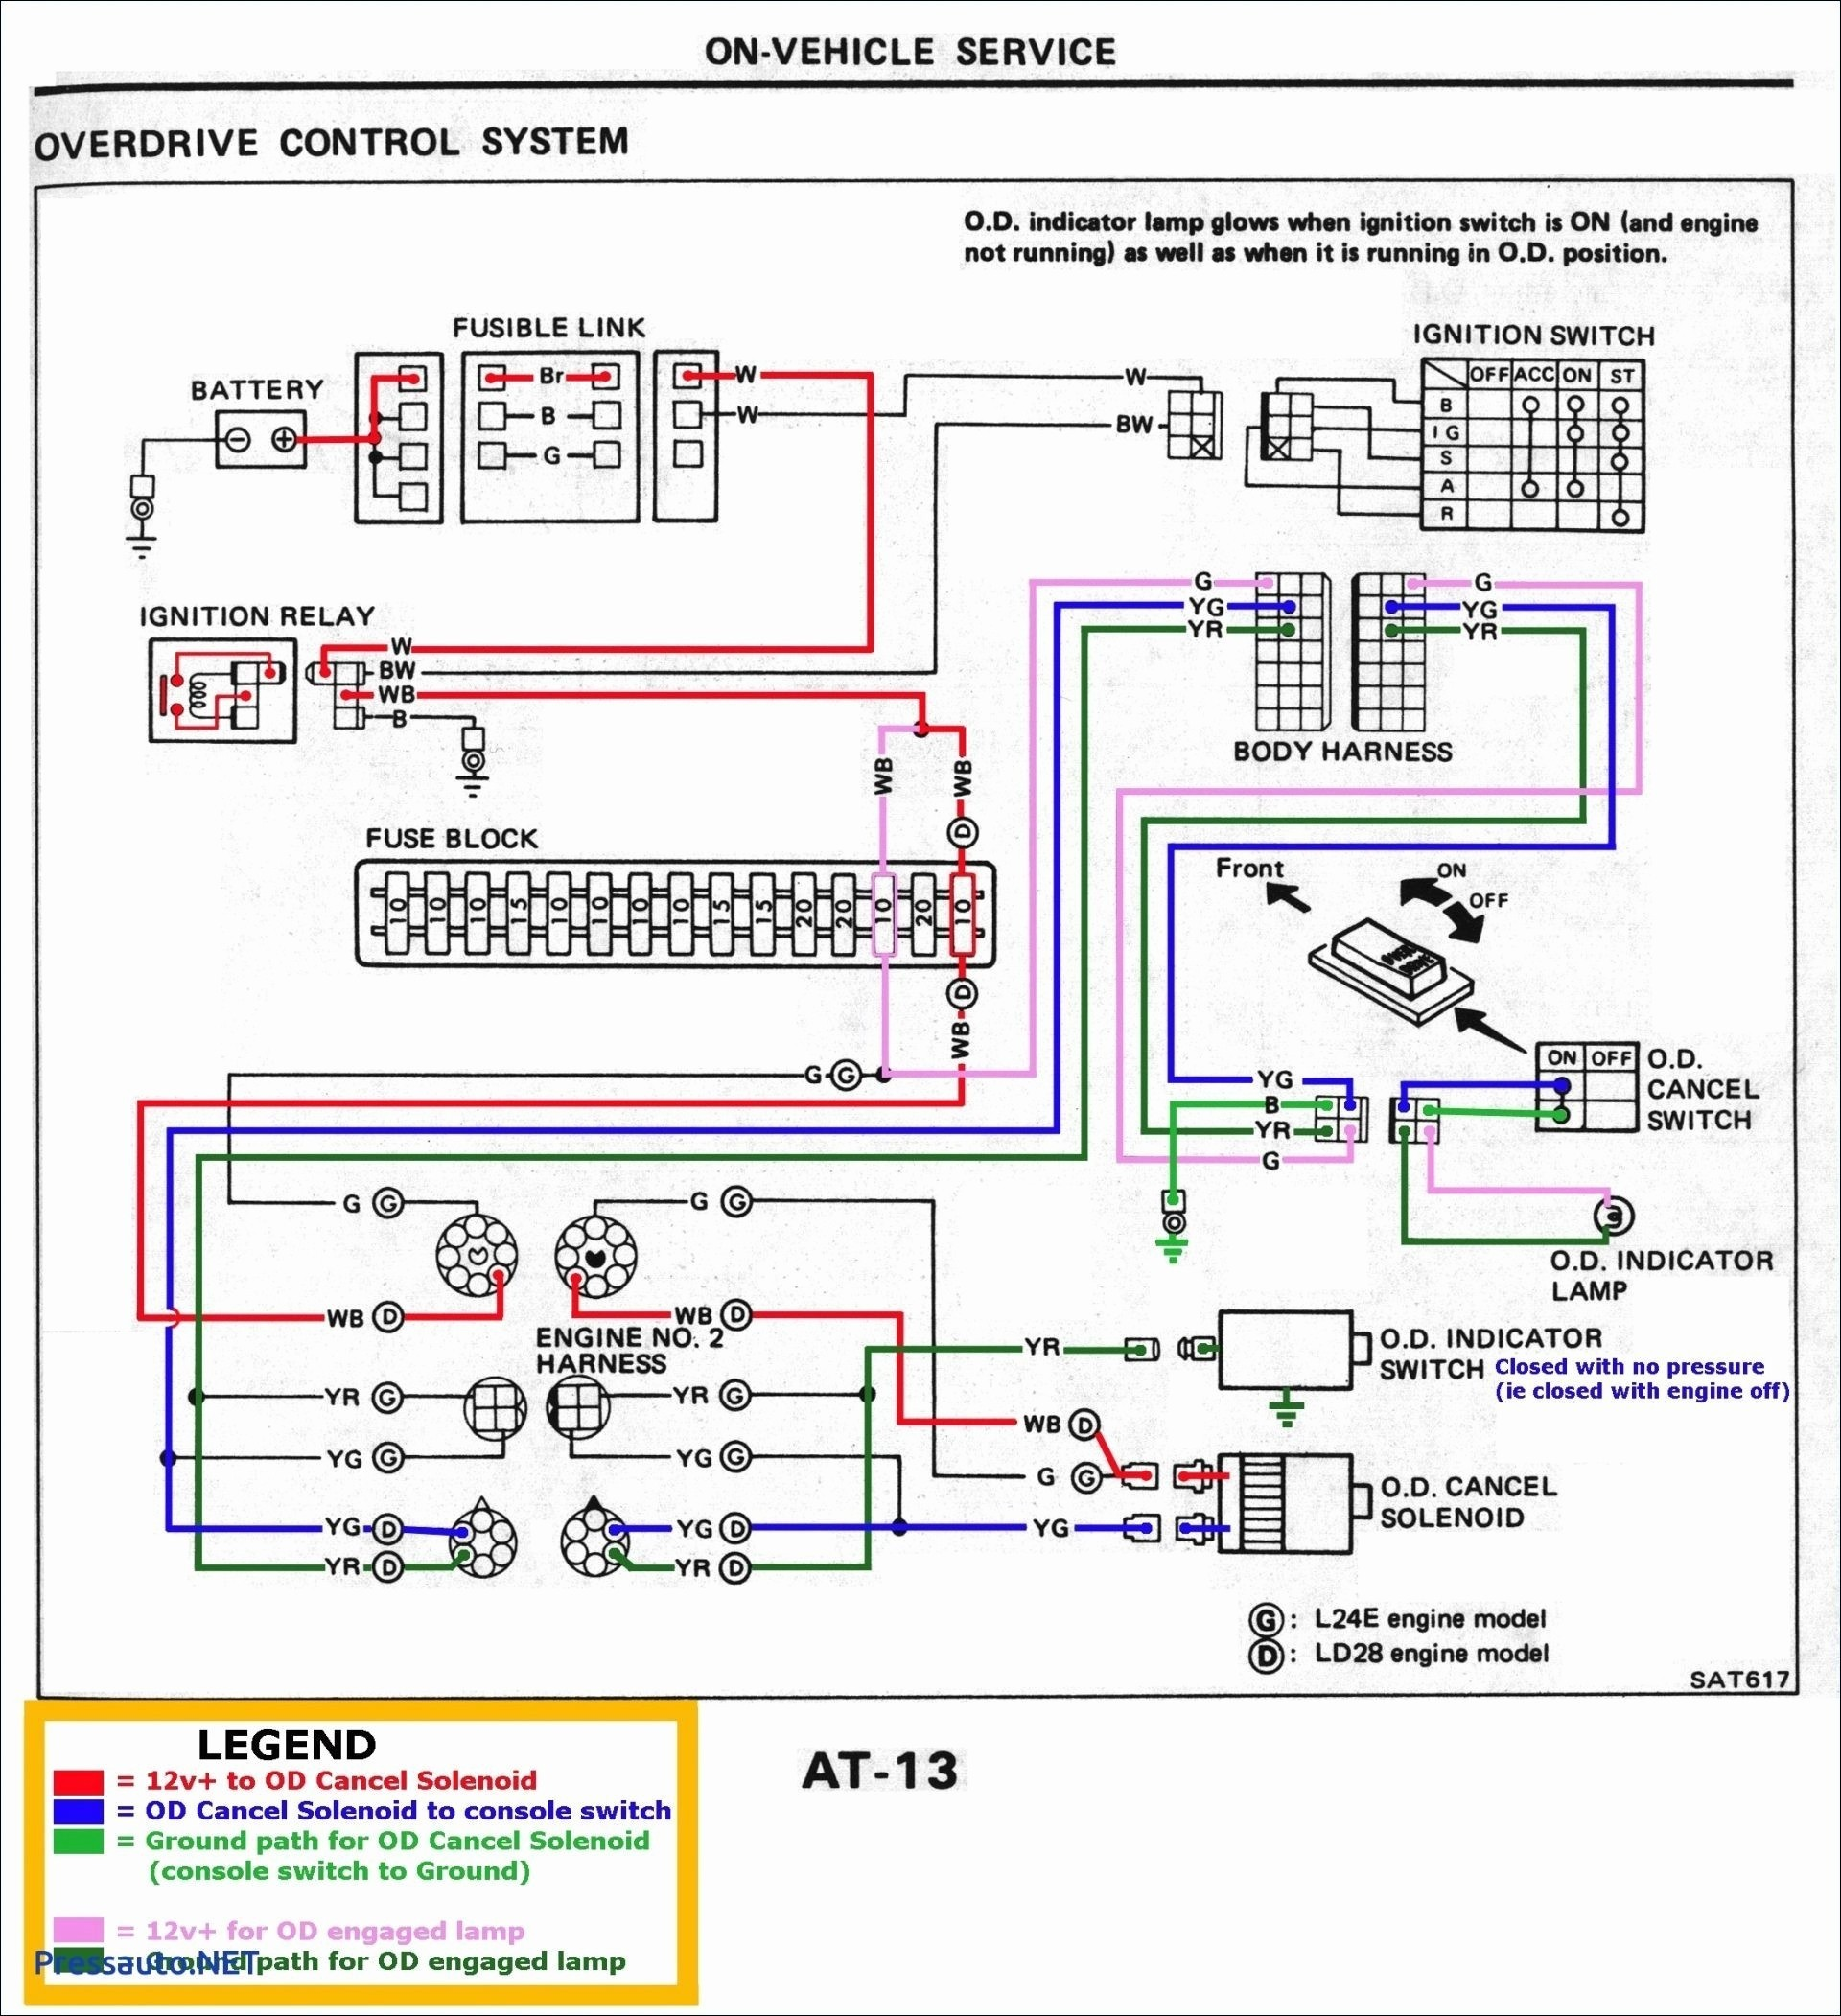 Pollak Trailer Plug Wiring Diagram Rc 1091] Wiring Diagram for Interstate Trailer Wiring Diagram Of Pollak Trailer Plug Wiring Diagram